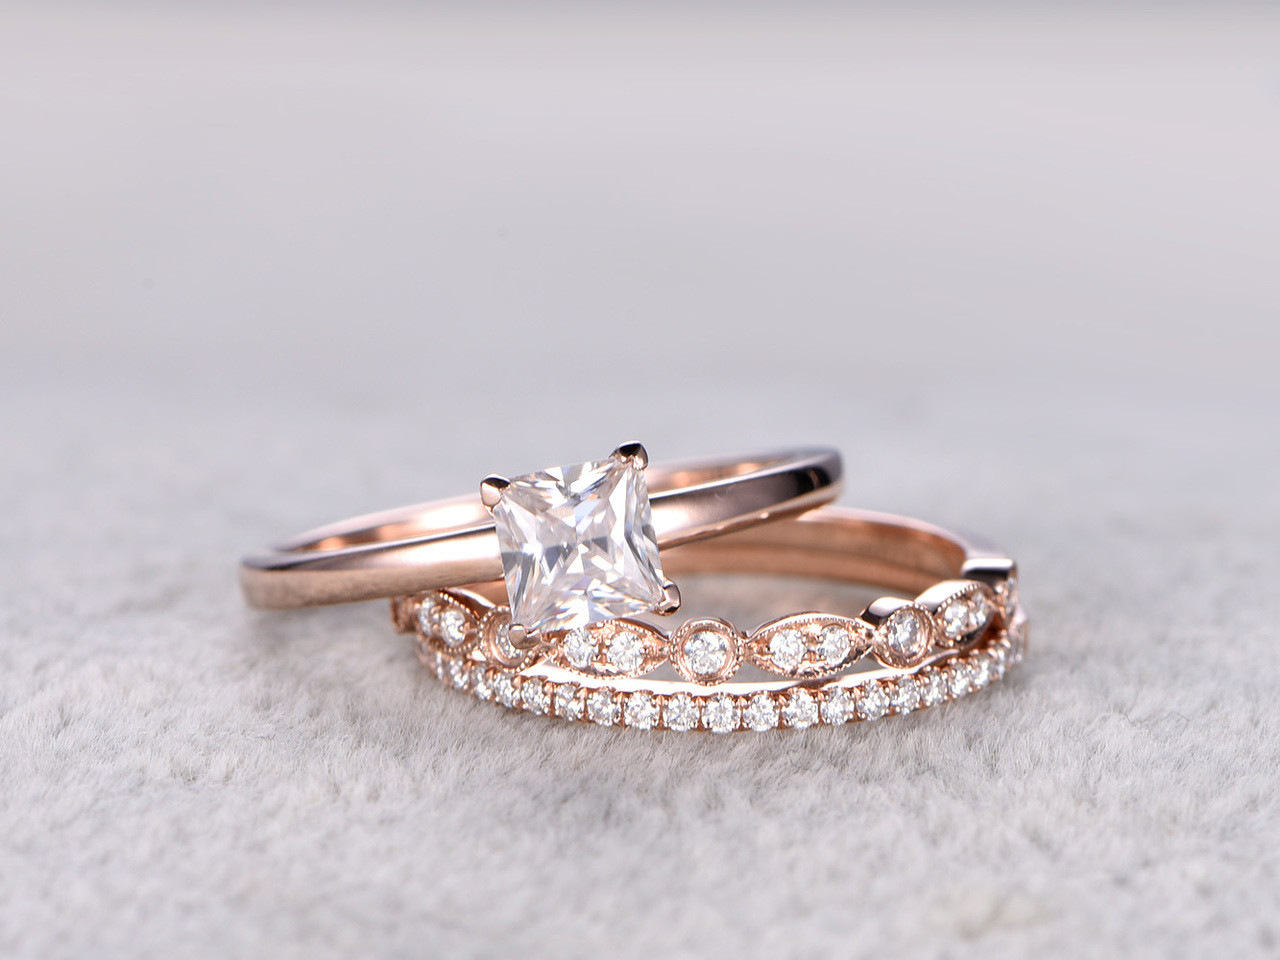 Moissanite engagement ring set 3pcs pricess cut moissanite bridal ...